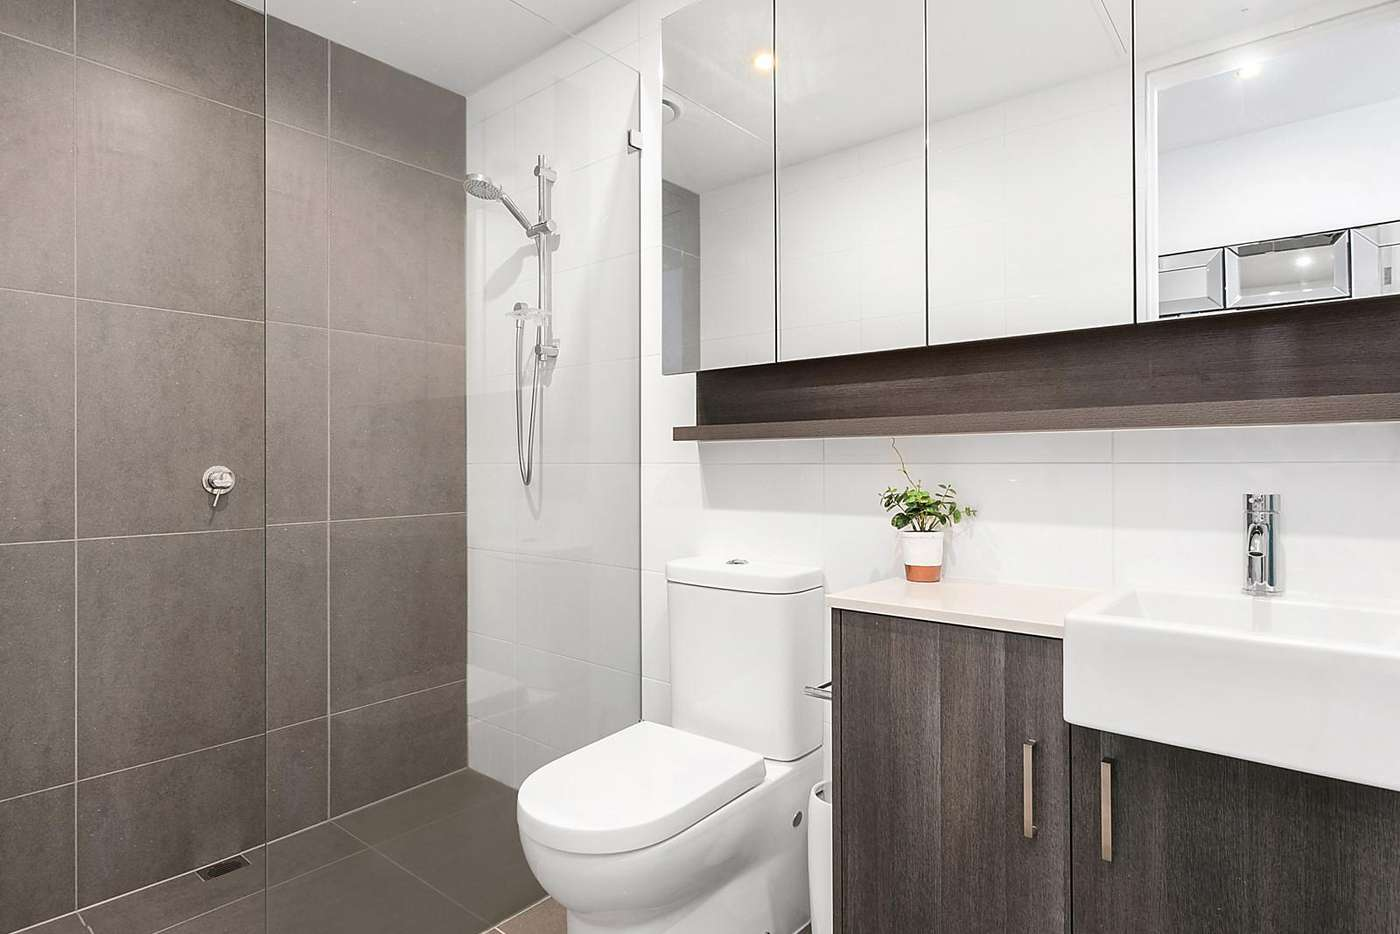 Sixth view of Homely apartment listing, 218/222 Bay Road, Sandringham VIC 3191